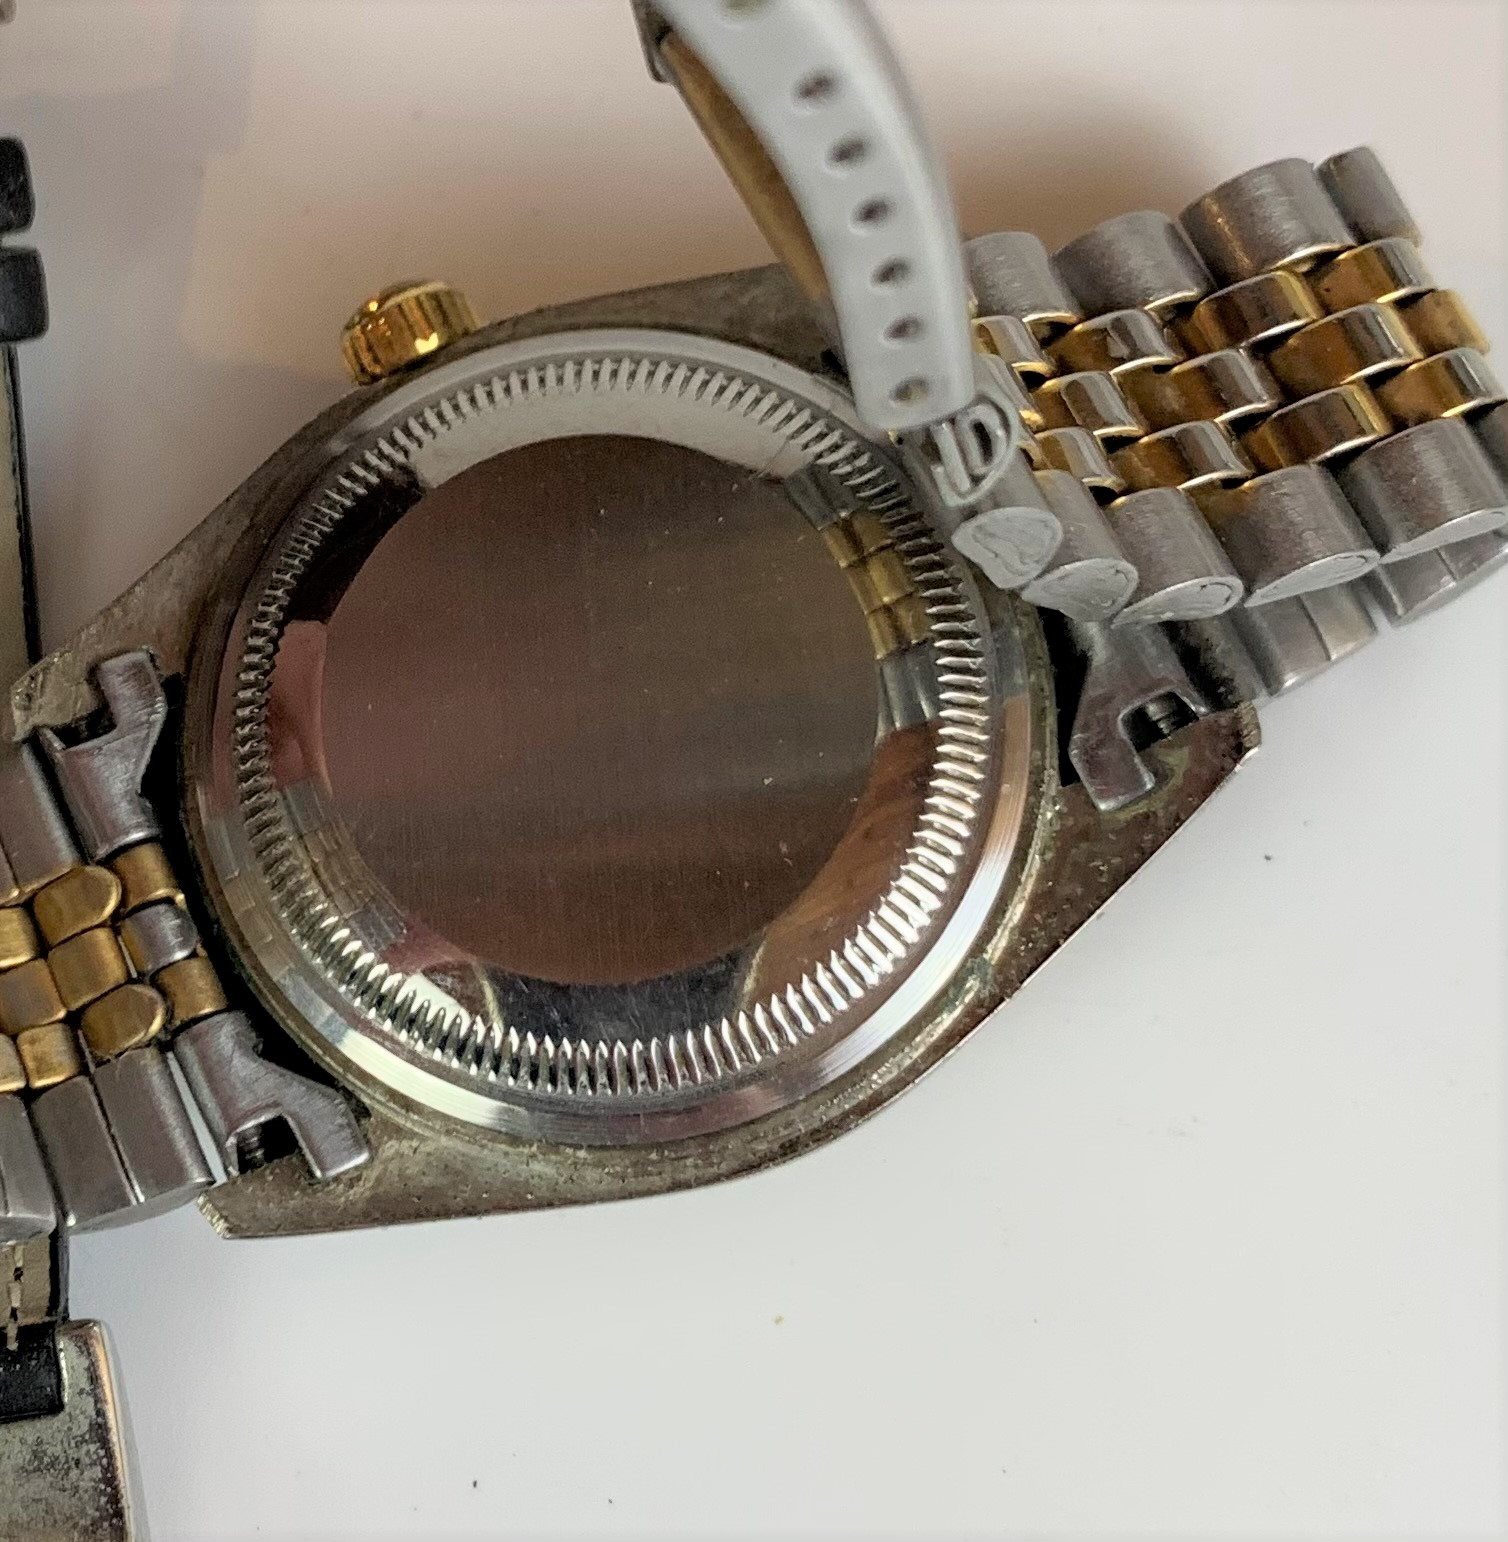 4 dress watches - Image 6 of 8